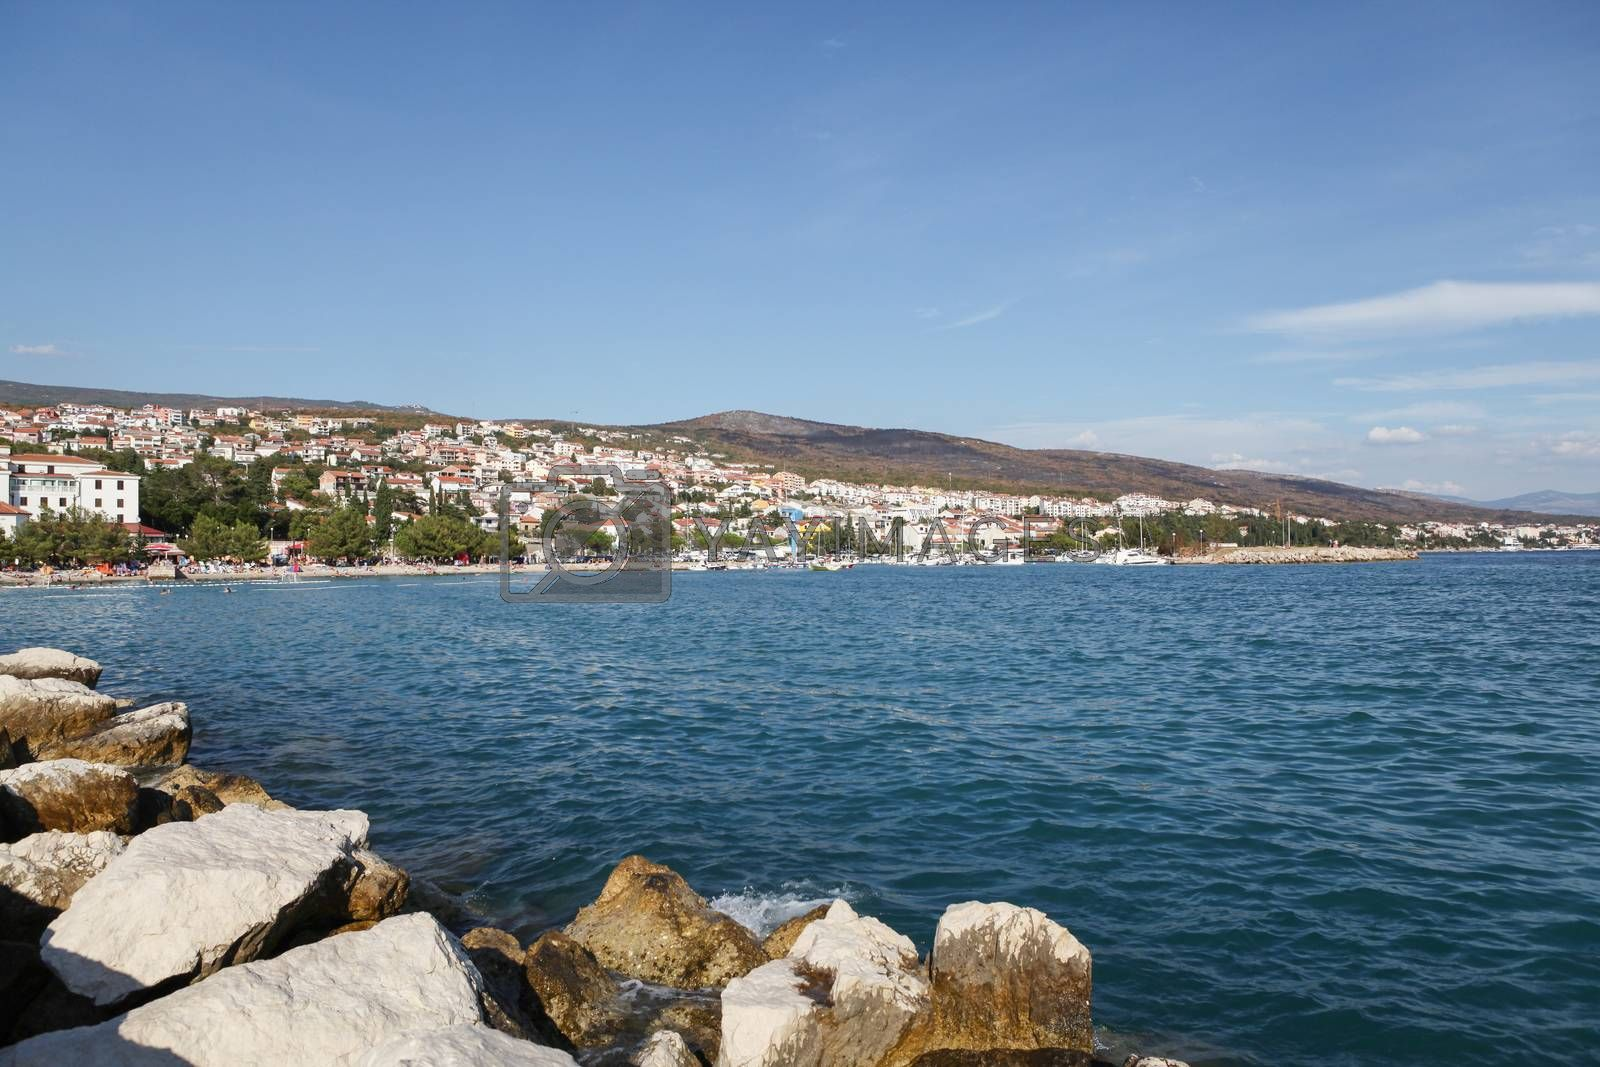 Royalty free image of Crikvenica, Croatia by bayberry